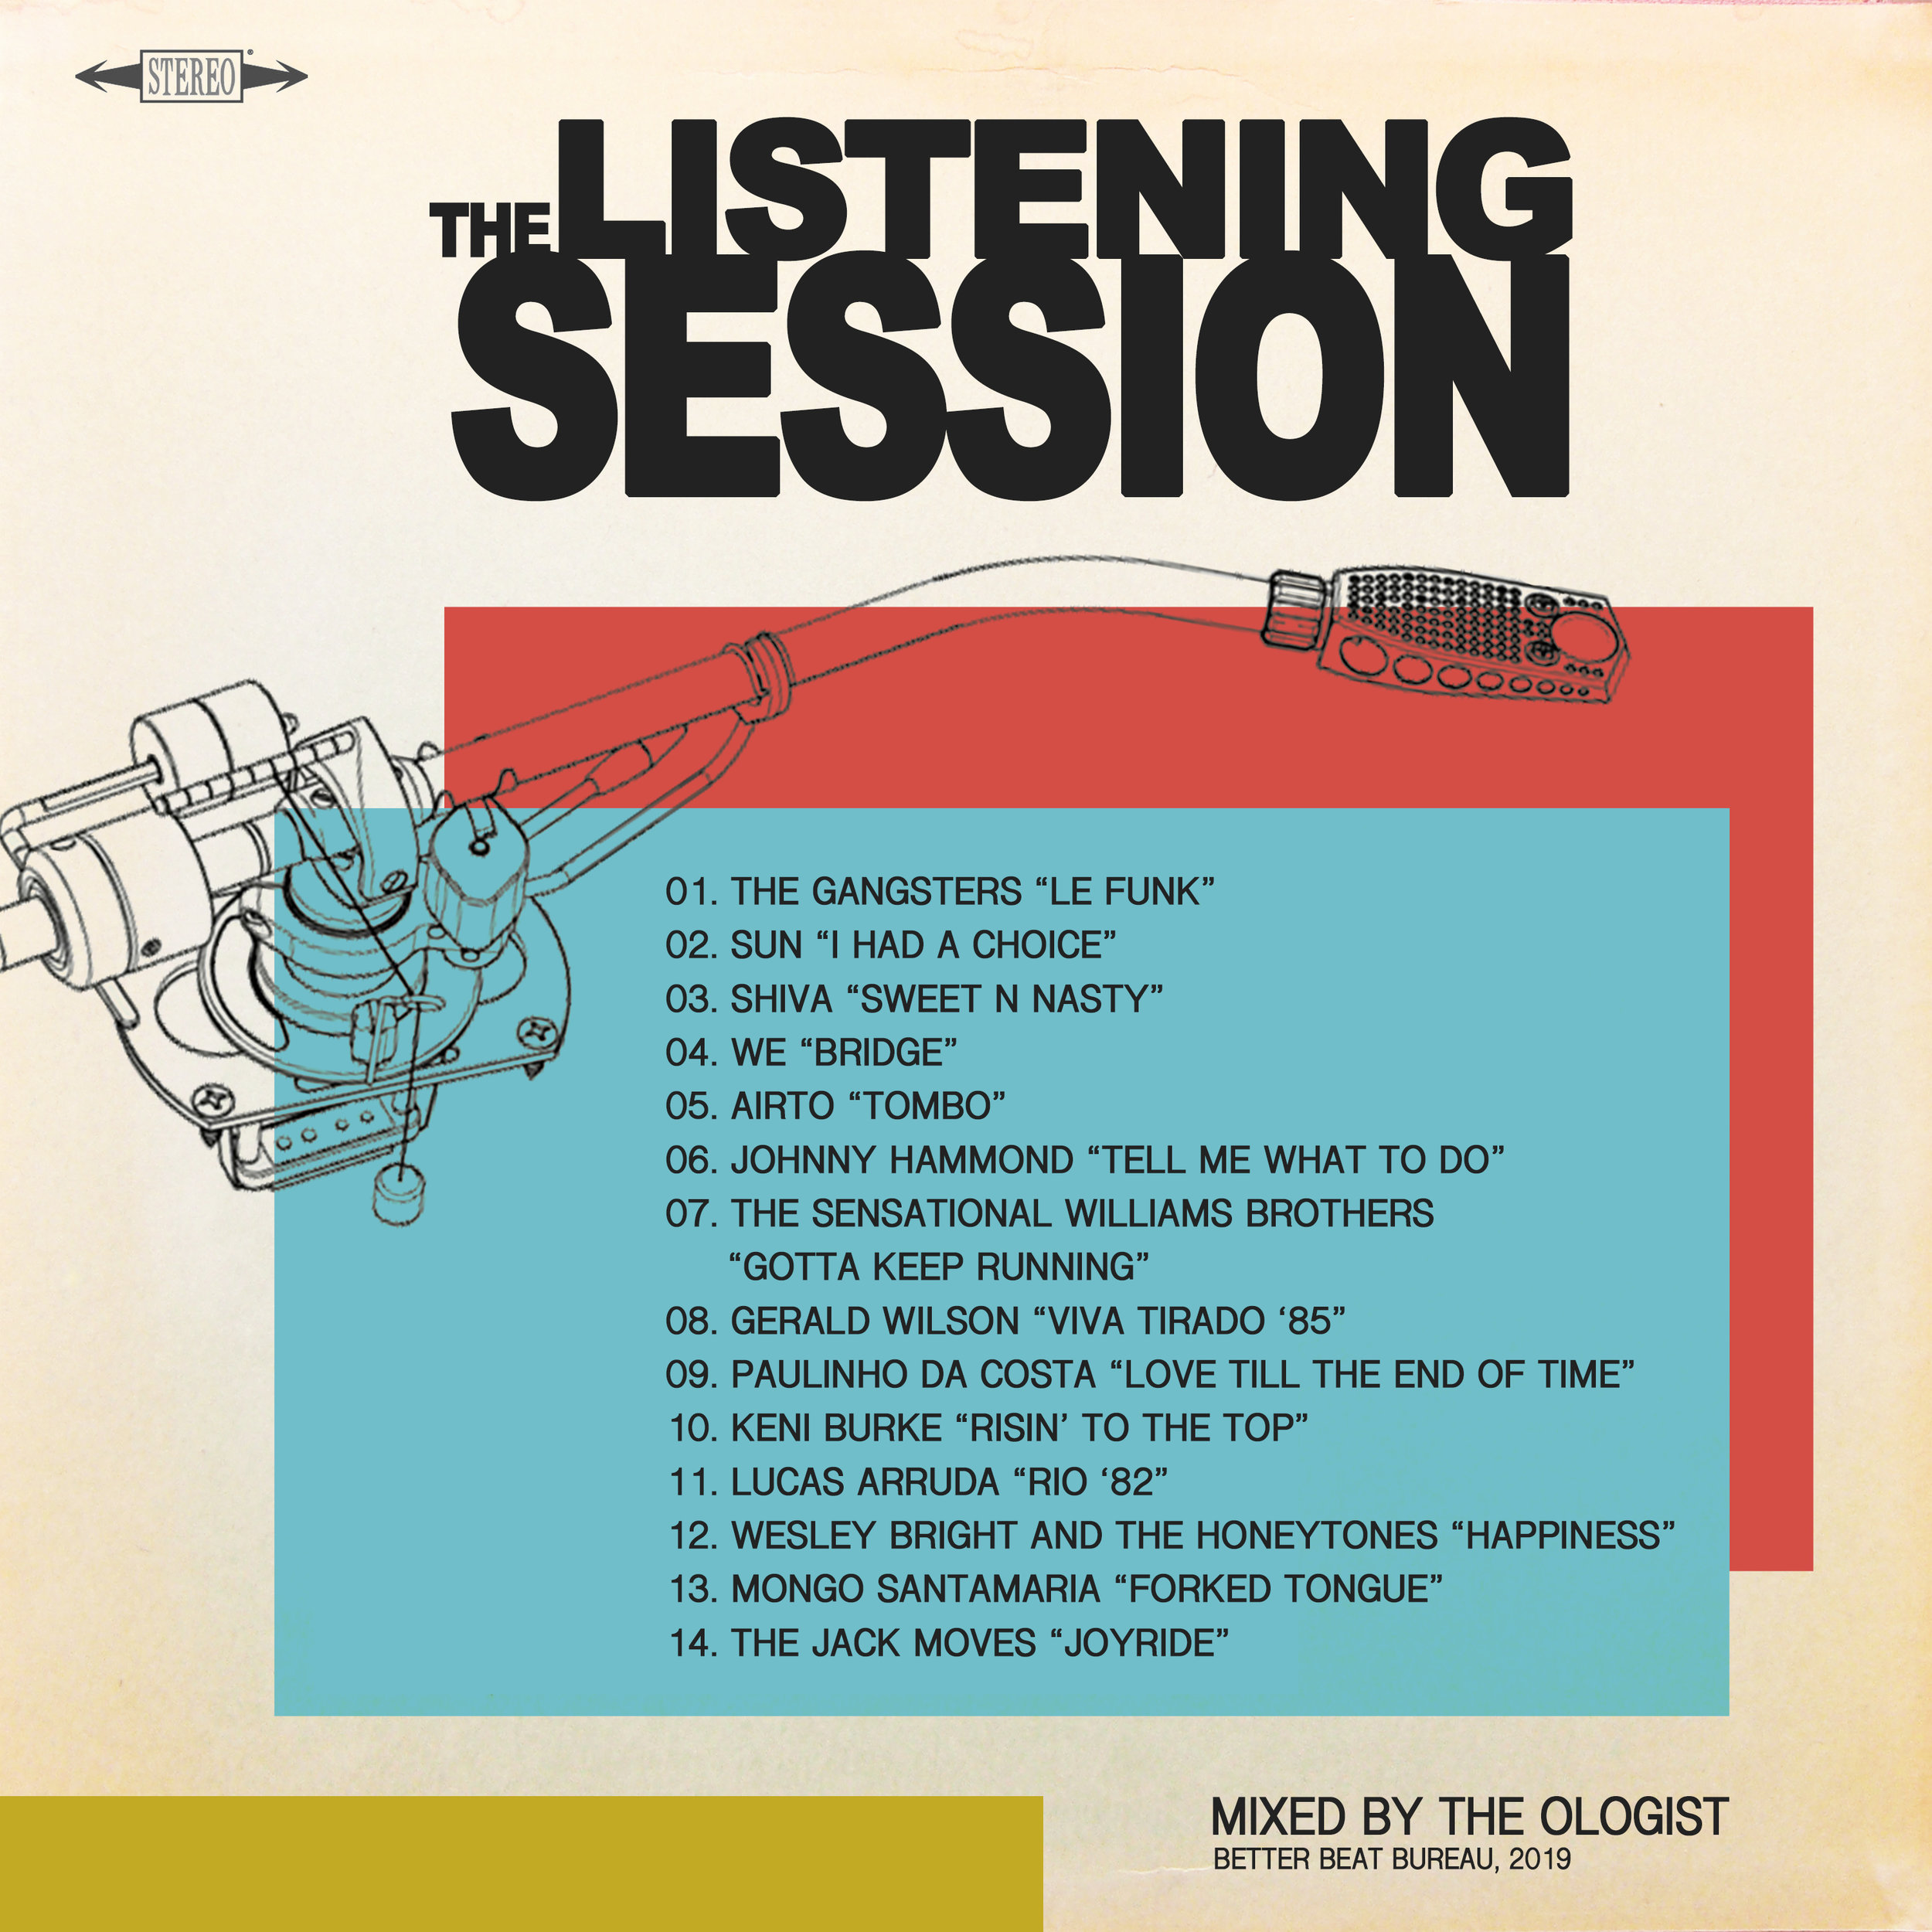 the Ologist - The Listening Session (Popscure mix)_back cover.jpg